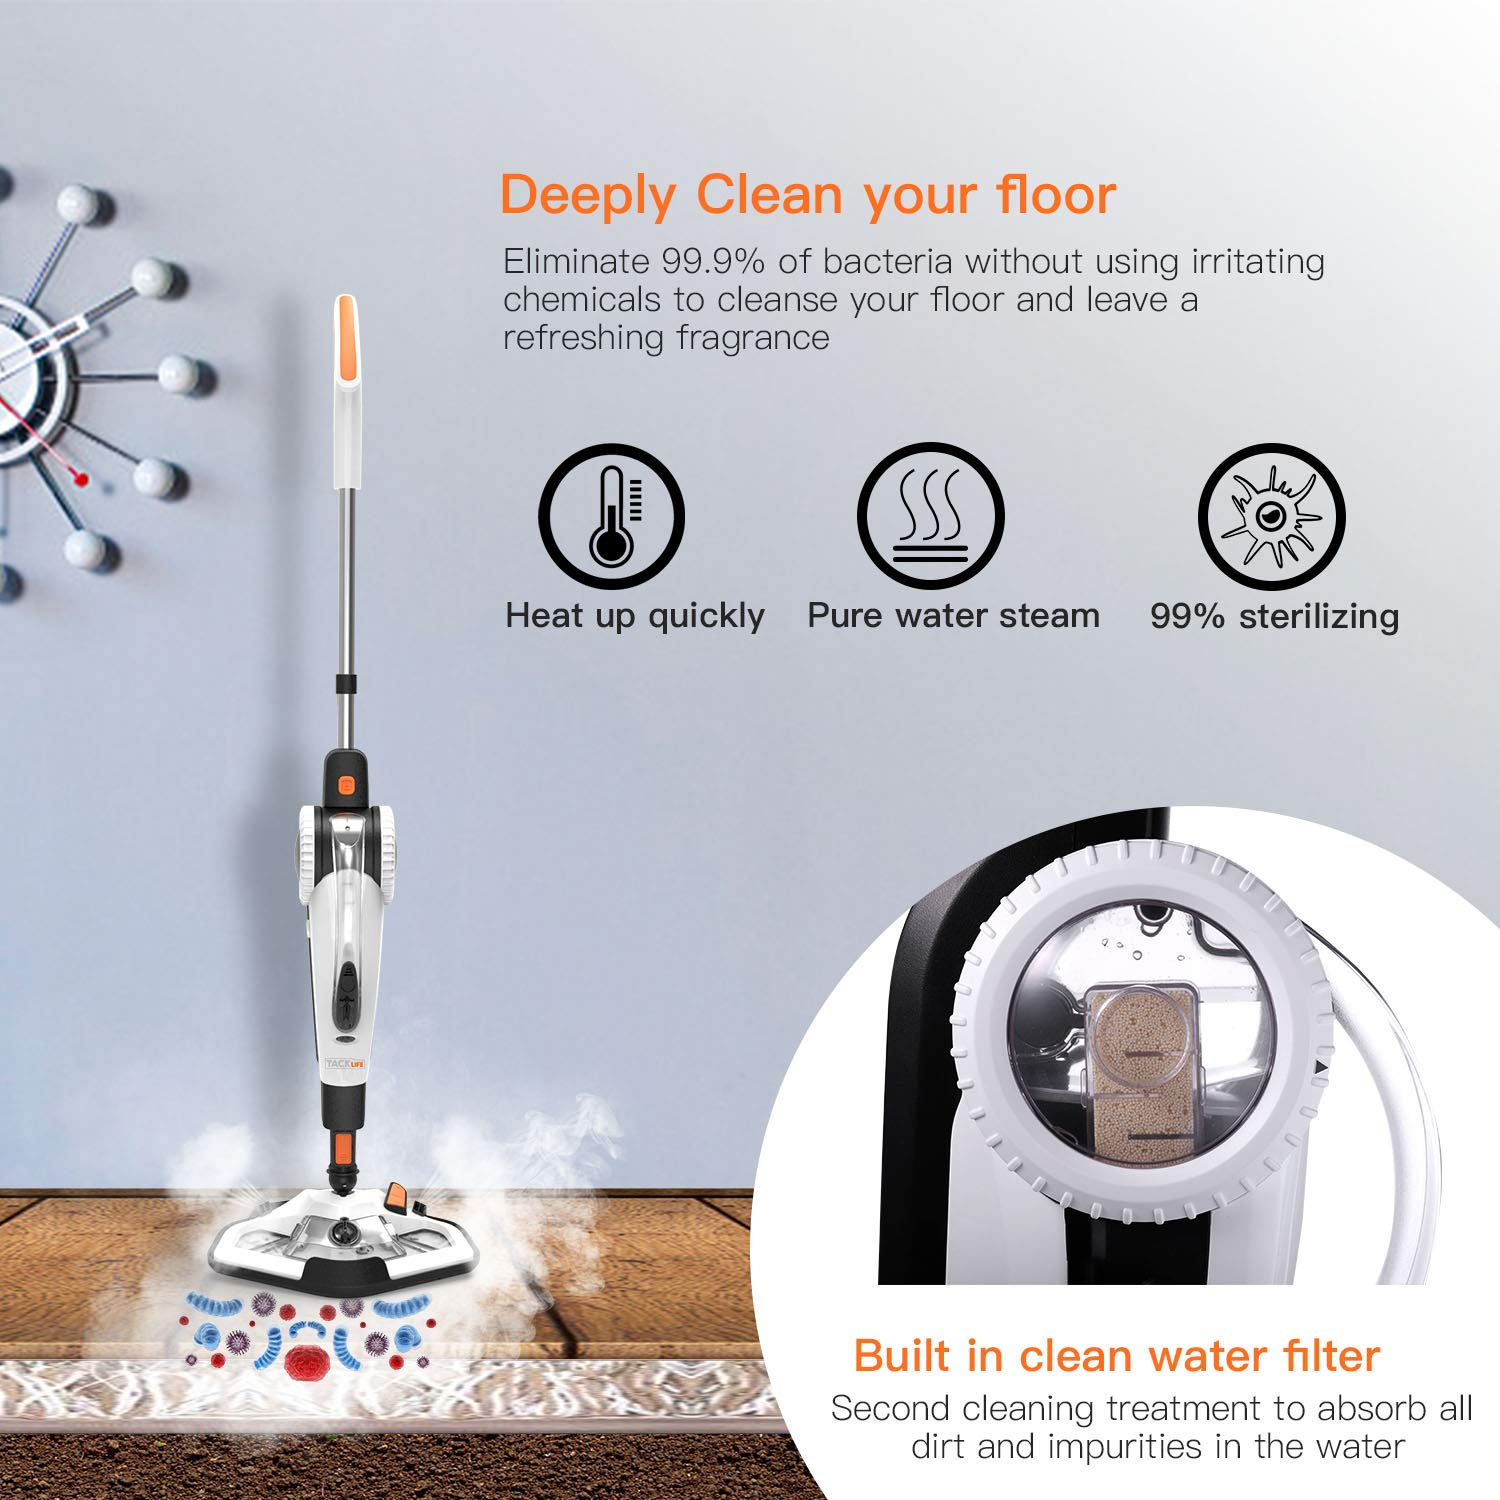 TACKLIFE Steam Mop, Steam Cleaner Multifunction Floor Steamer and Hand-held Steam Floor Mop 2 in 1, 1400W Portable Electric Scrubber Heating in 5s, with 11 Accessories by TACKLIFE (Image #4)